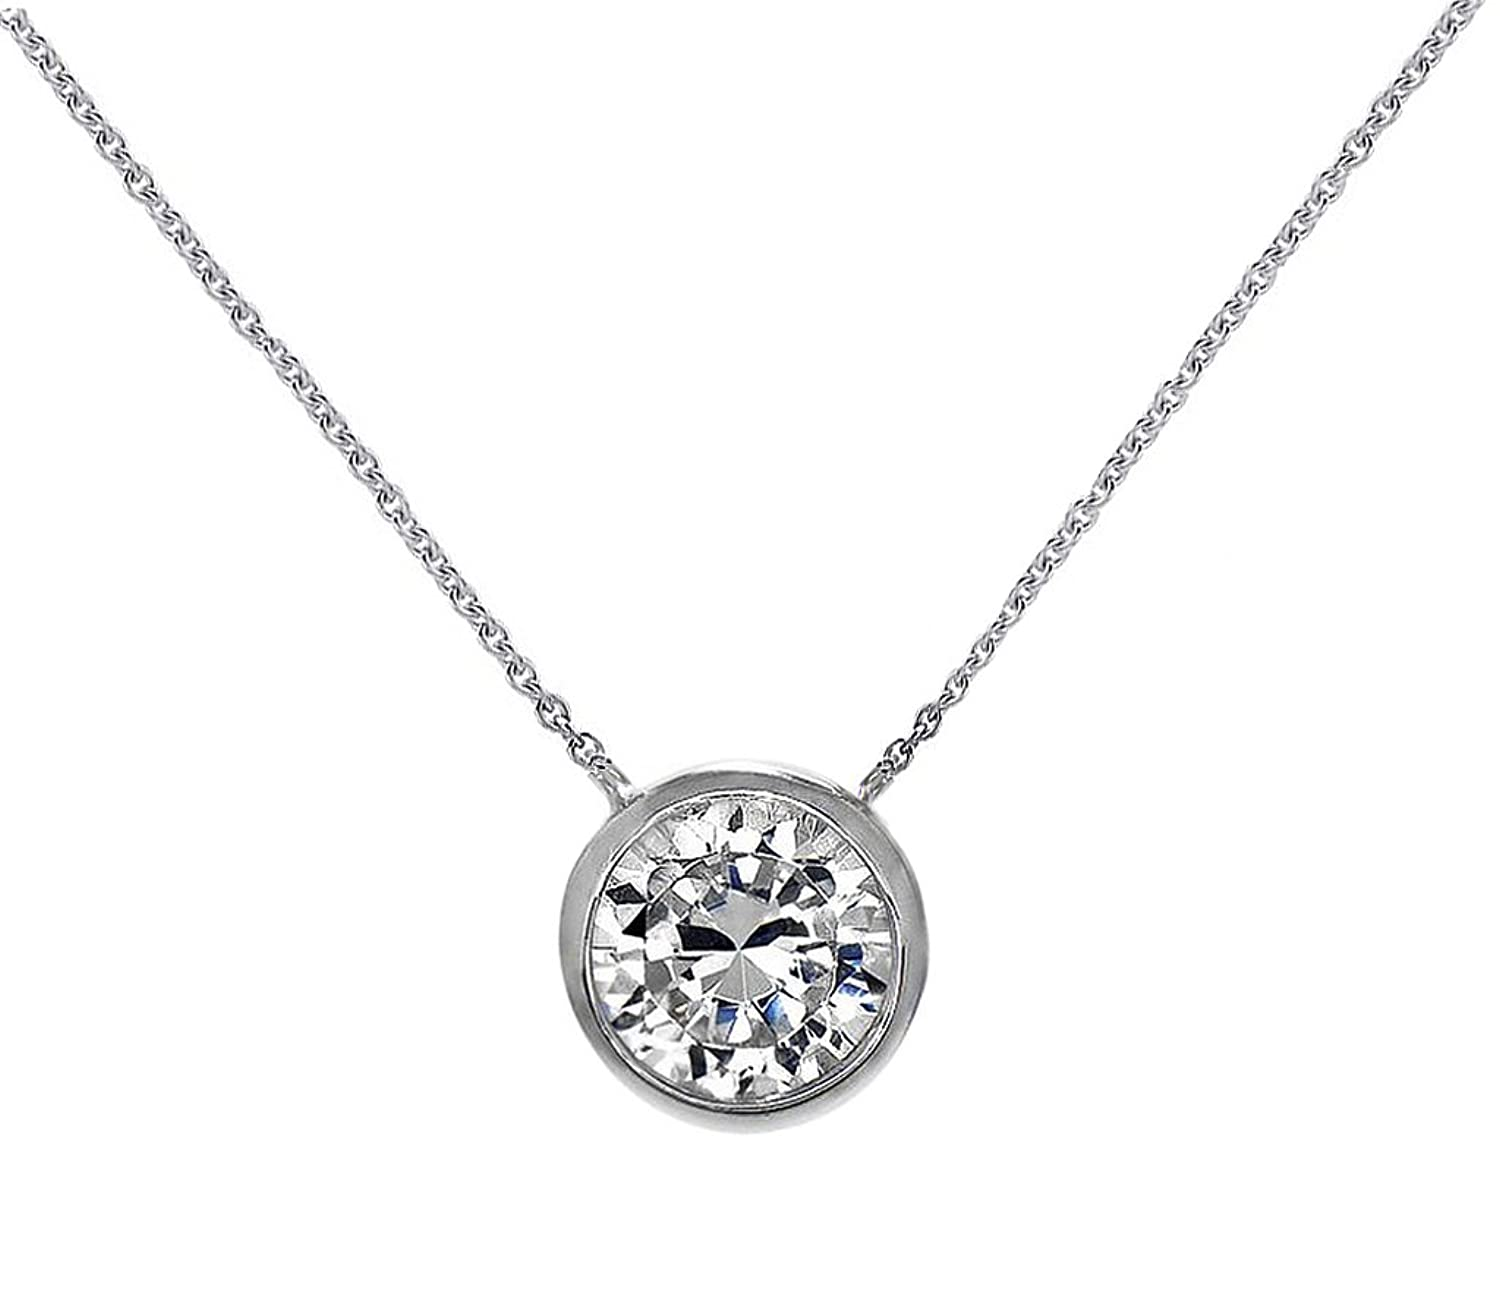 Amazon solitaire pendant necklace 925 sterling silver round amazon solitaire pendant necklace 925 sterling silver round 6mm cz bezel set 16 18 free box tiffany co jewelry aloadofball